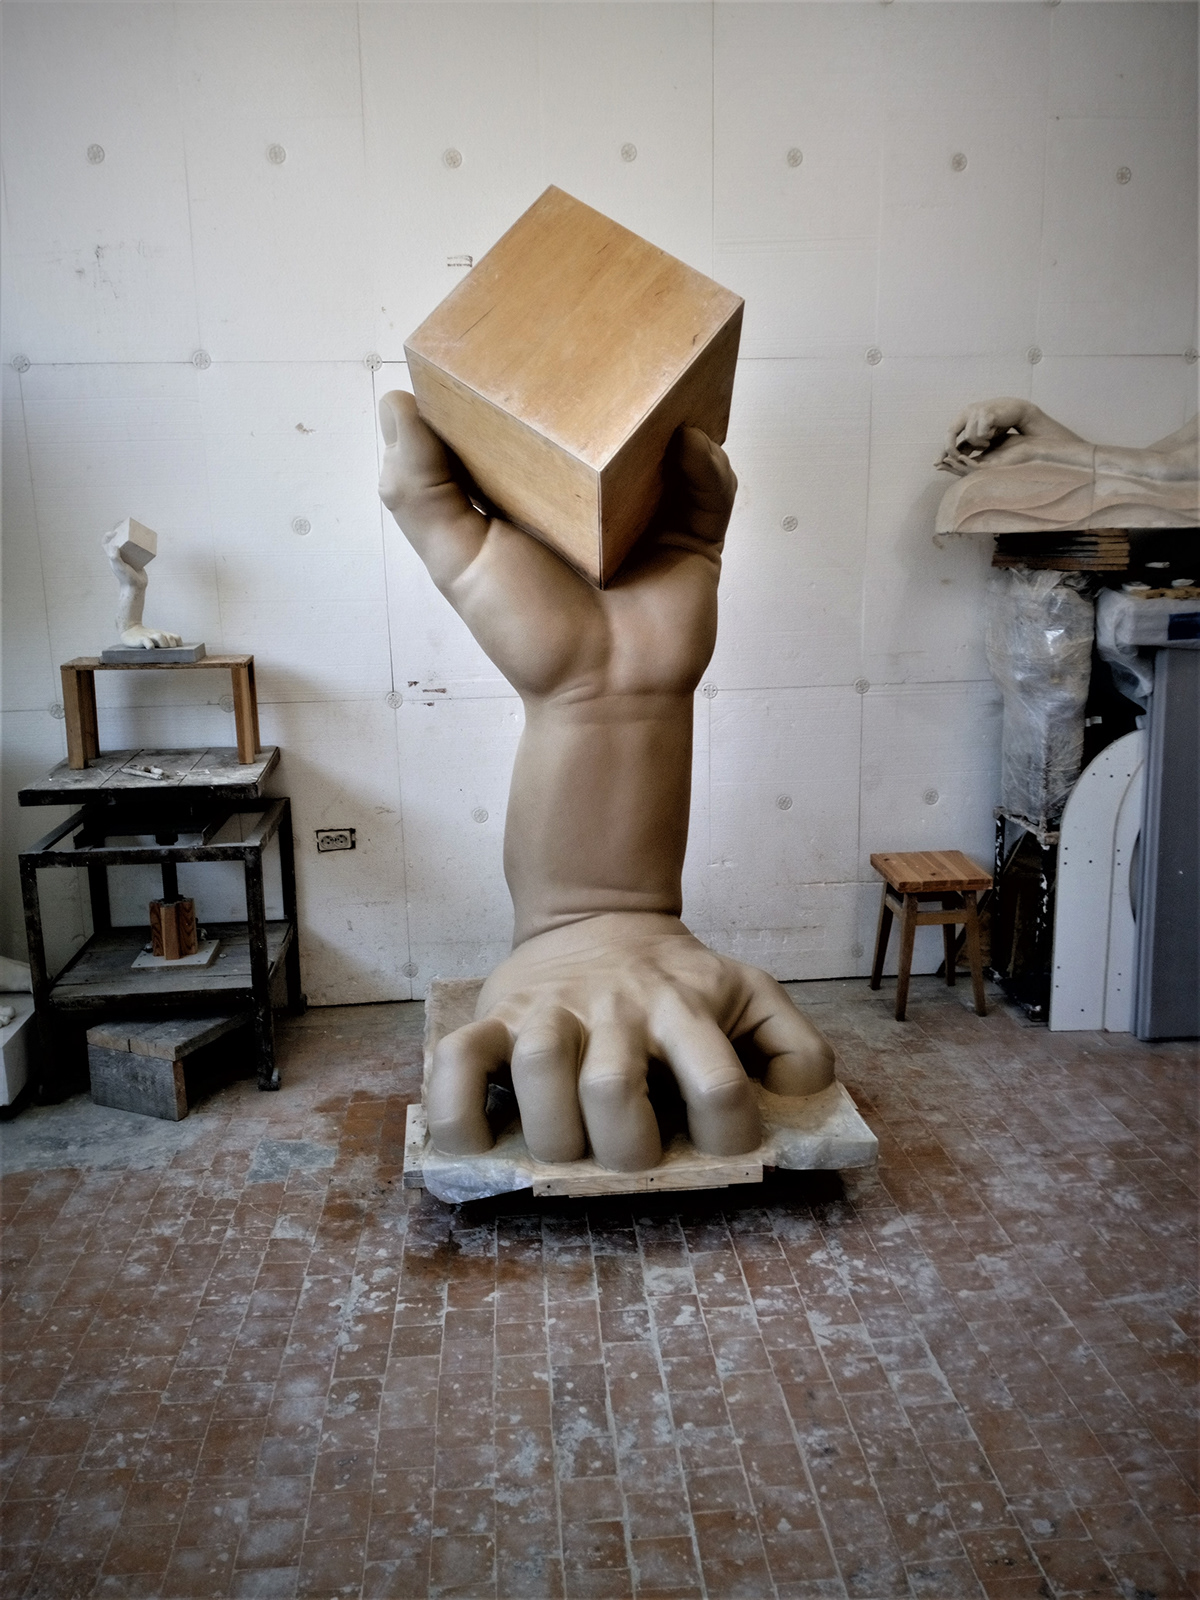 Adrian Balogh body concrete hand monument sculpting  sculpture stainless steel